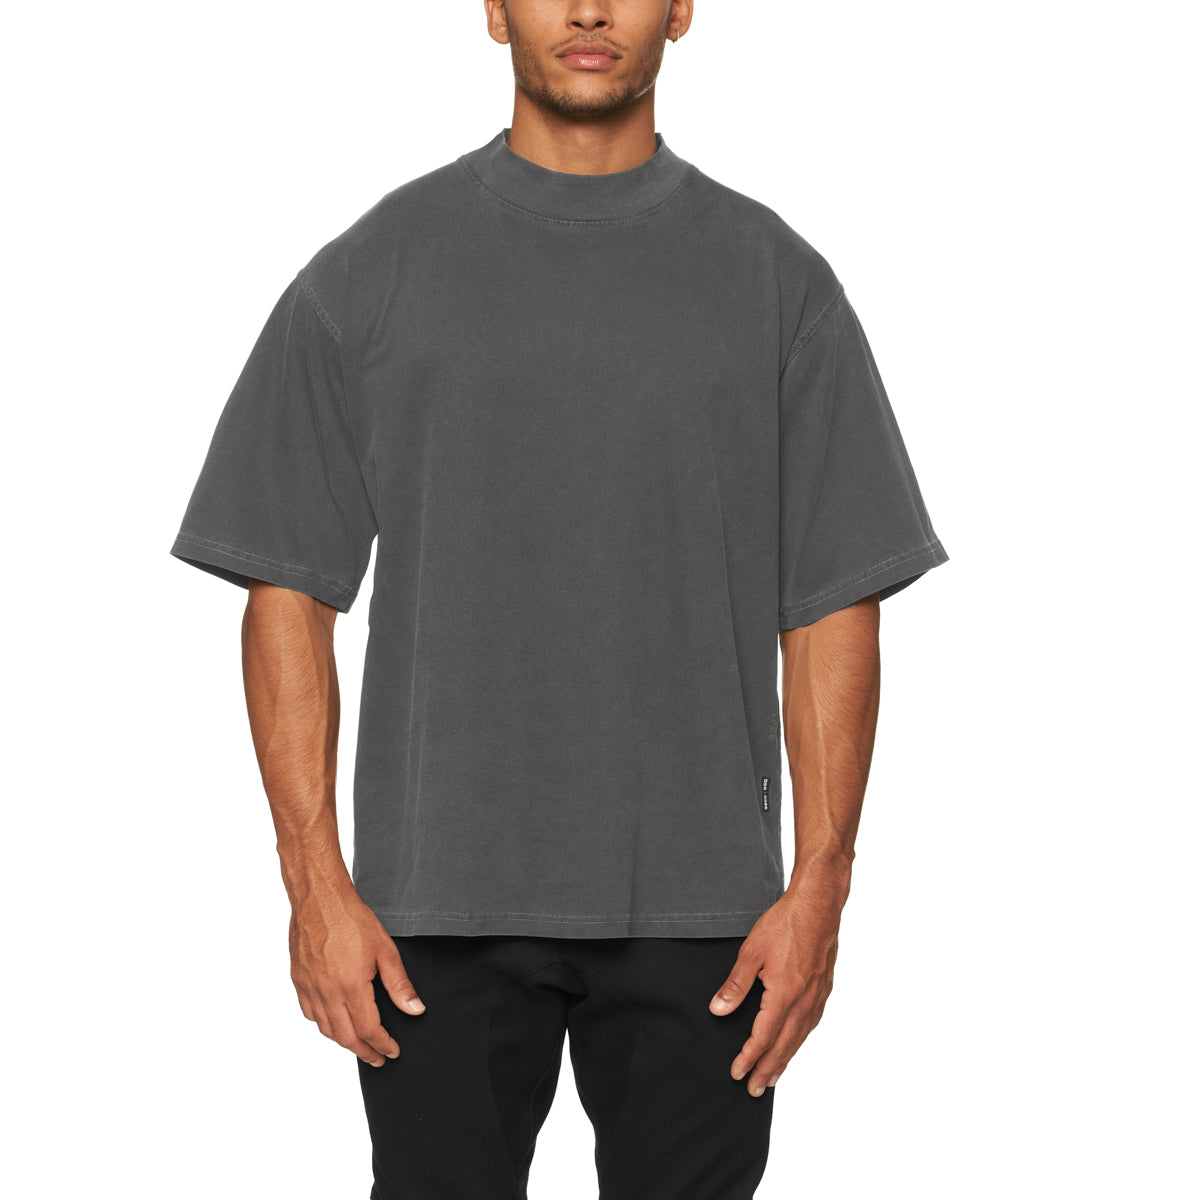 0385. CottonPlus™ Oversized Mock Neck Tee - Faded Grey